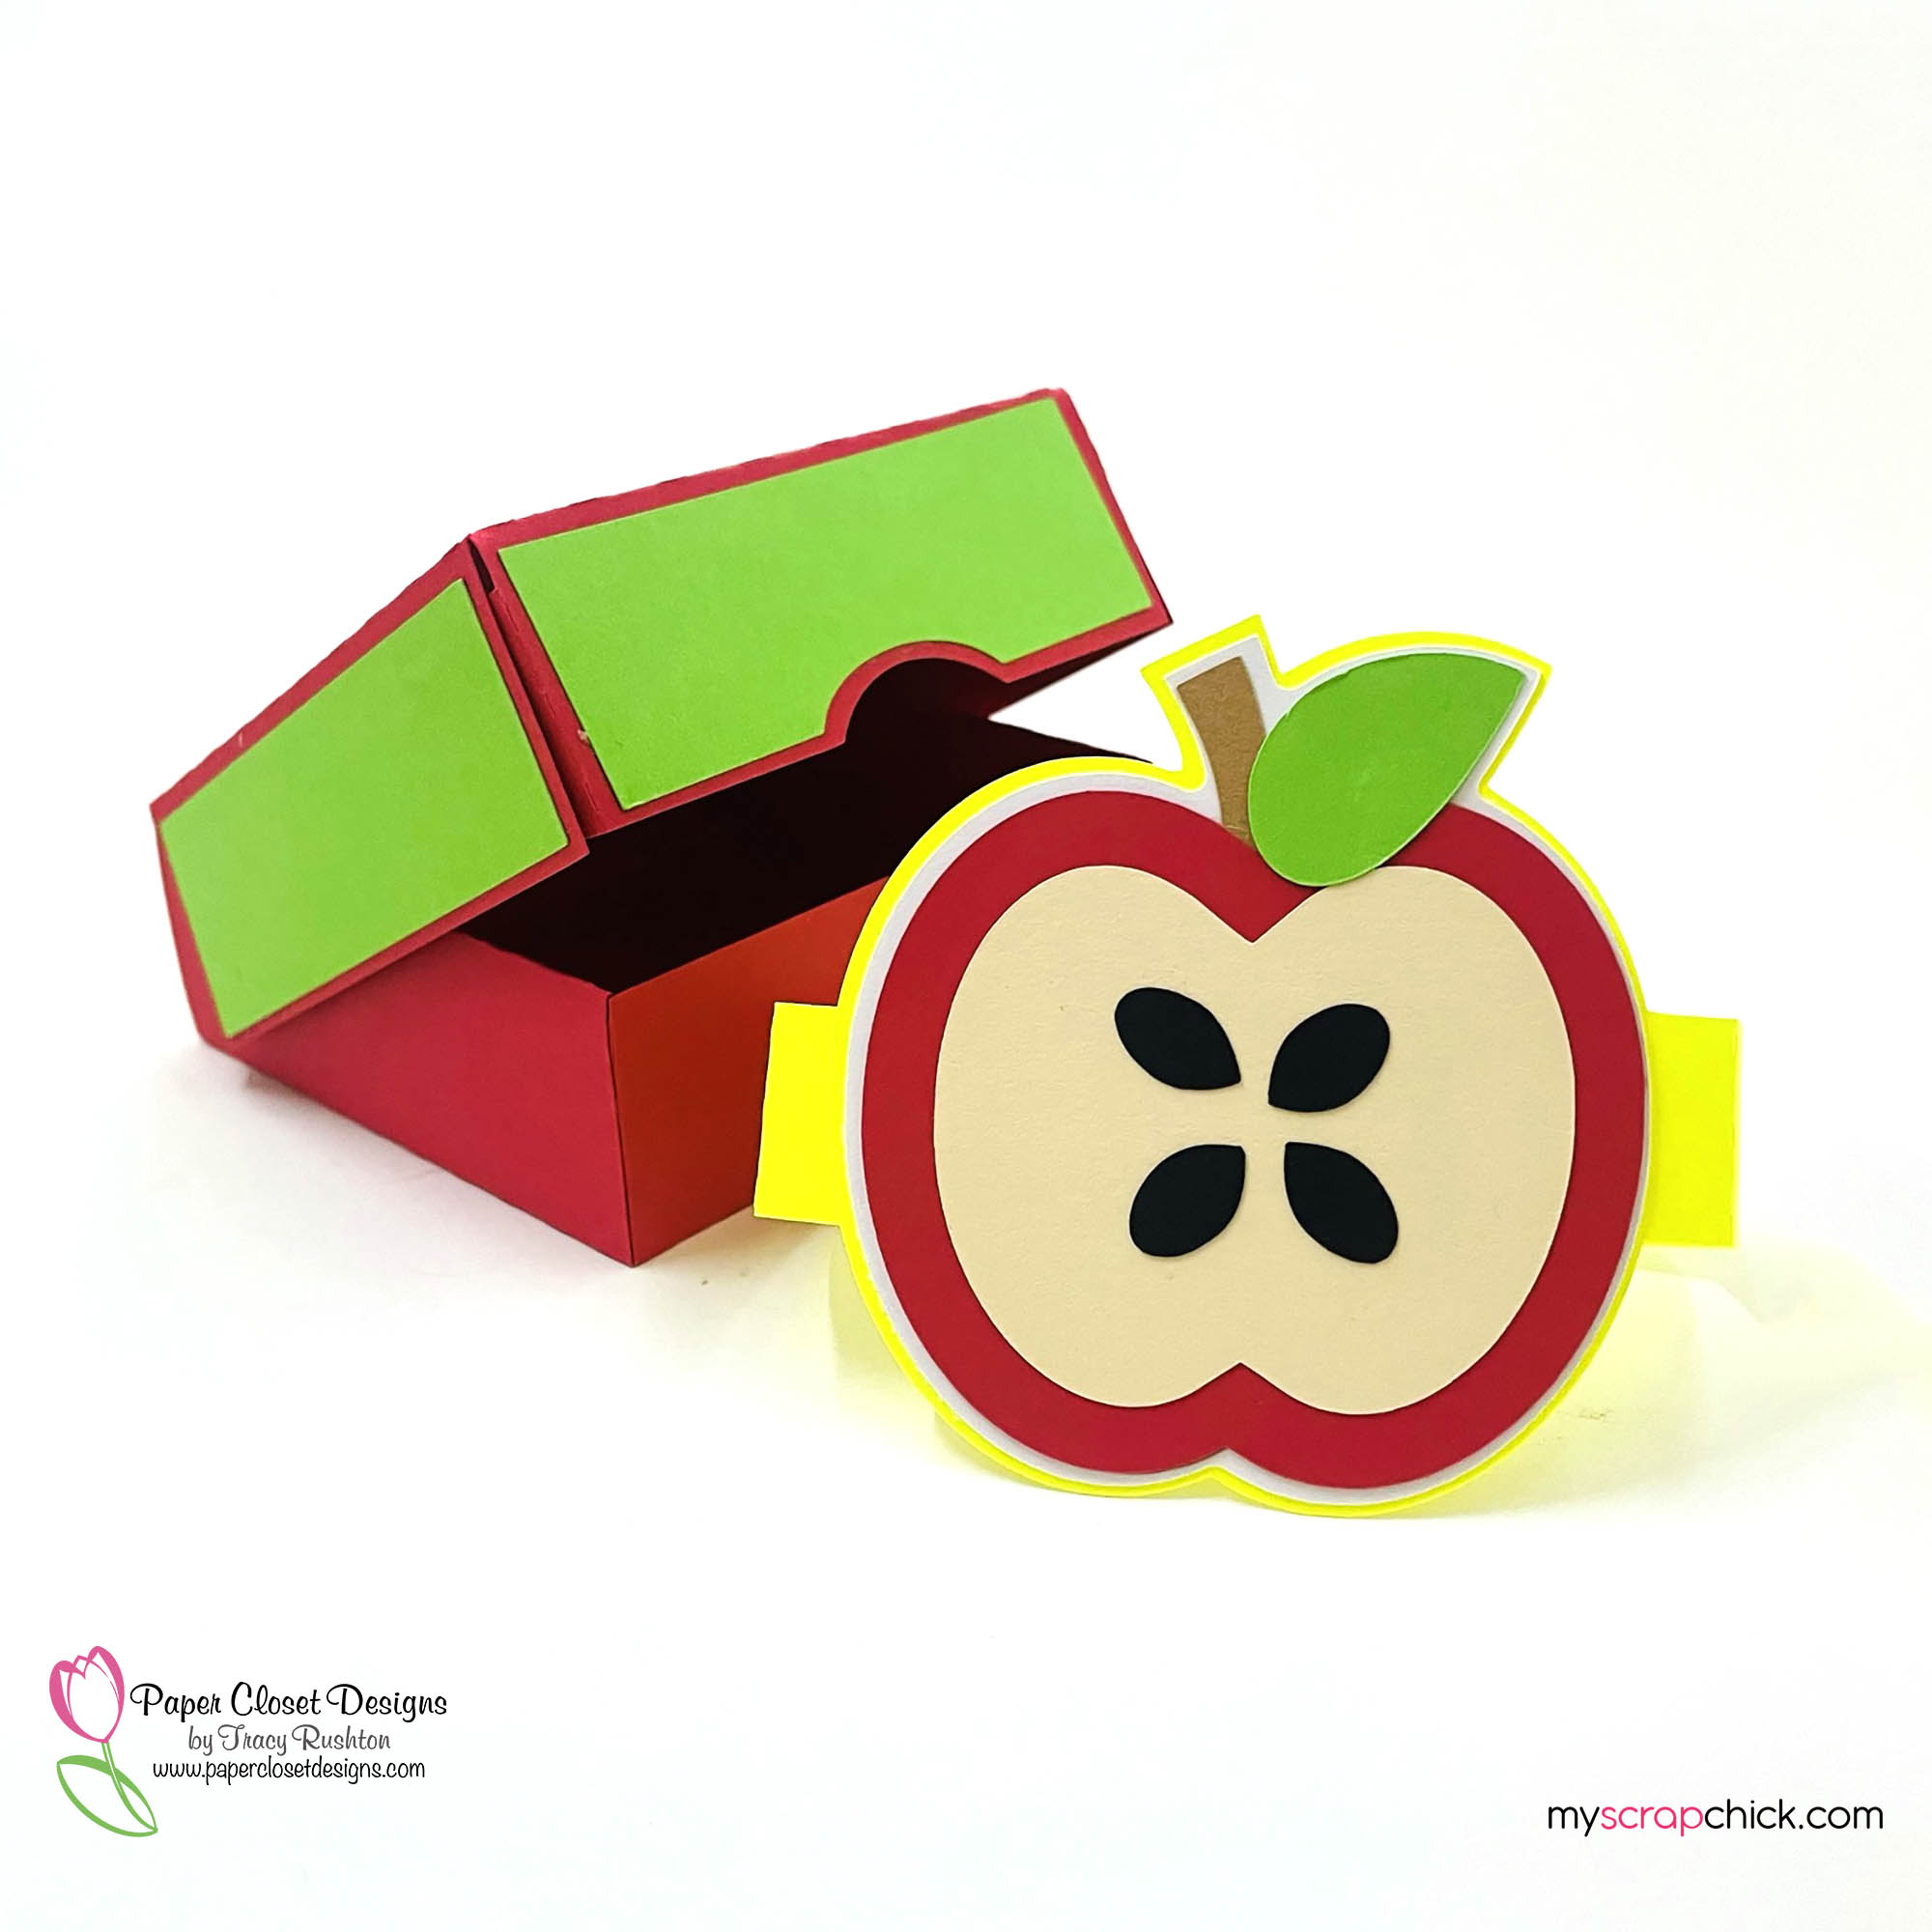 Hinged Box With Apple Core Open